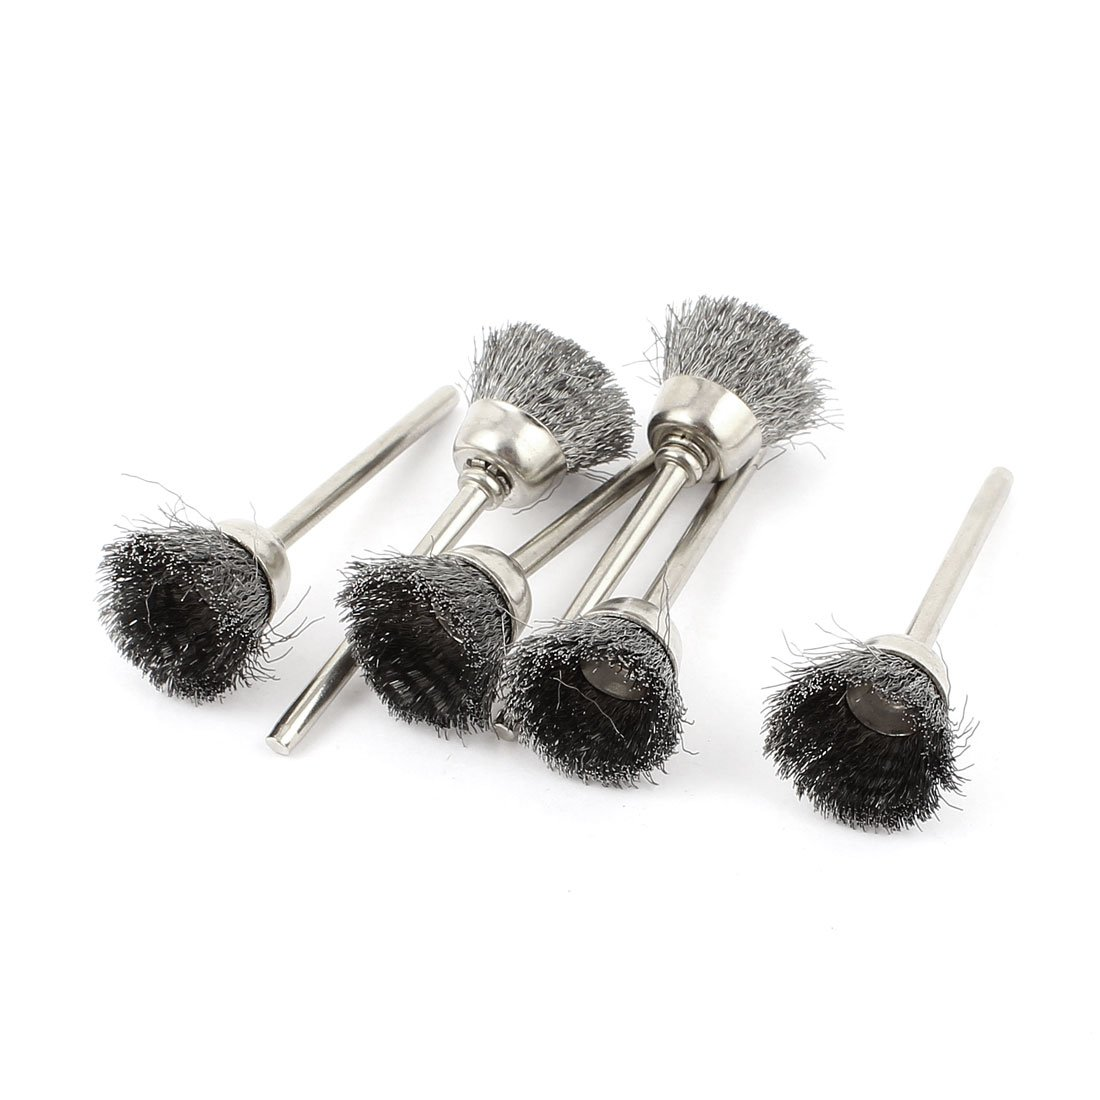 Sourcingmap® 3mm Shank 15mm Cup Dia Stainless Steel Wire Polishing Brush 6 Pcs US-SA-AJD-74796